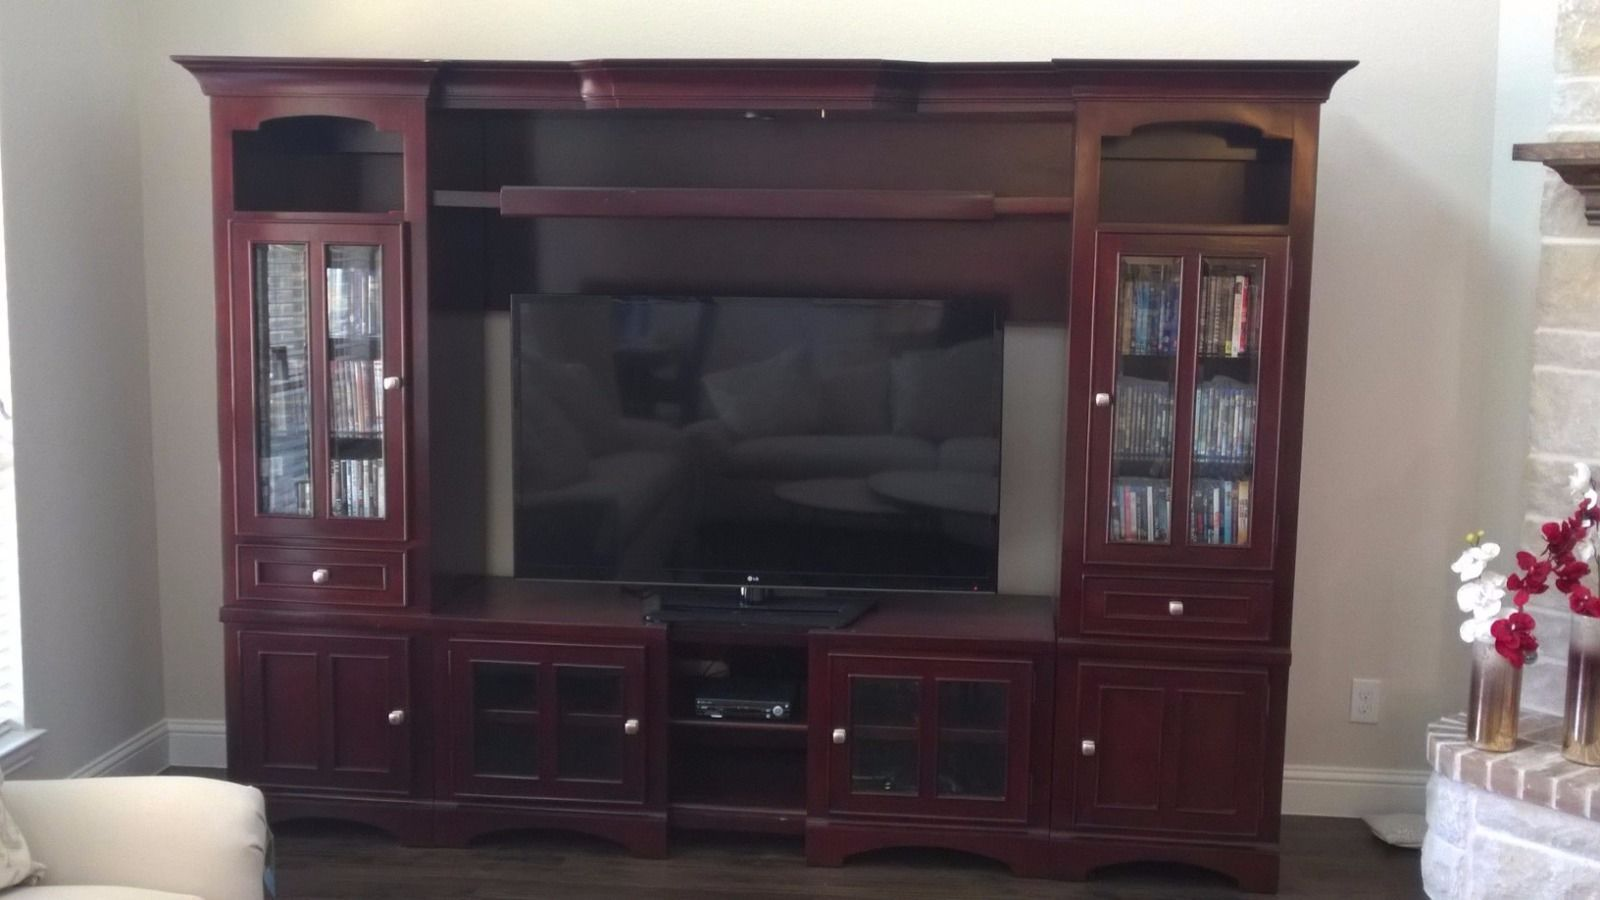 Tv And Media Wall Units: Entretaiment Center TV Media Wall Unit